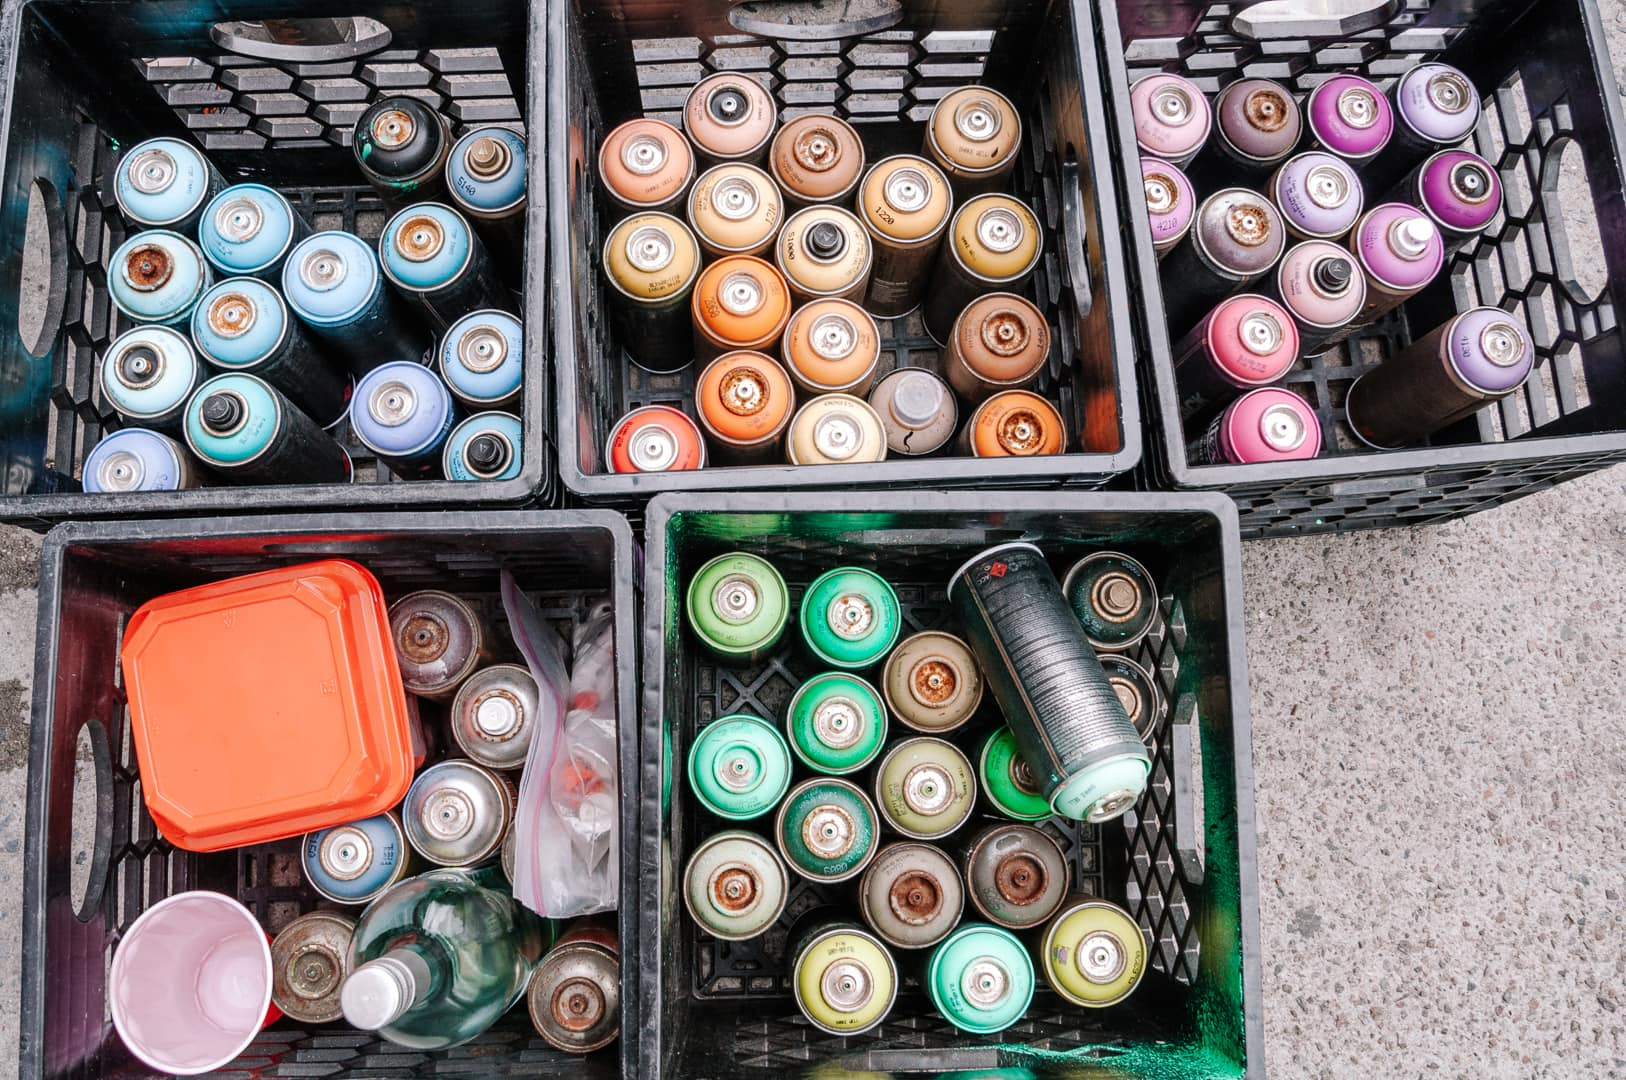 Cans of spray paint used for Bushwick street art and Brooklyn graffit